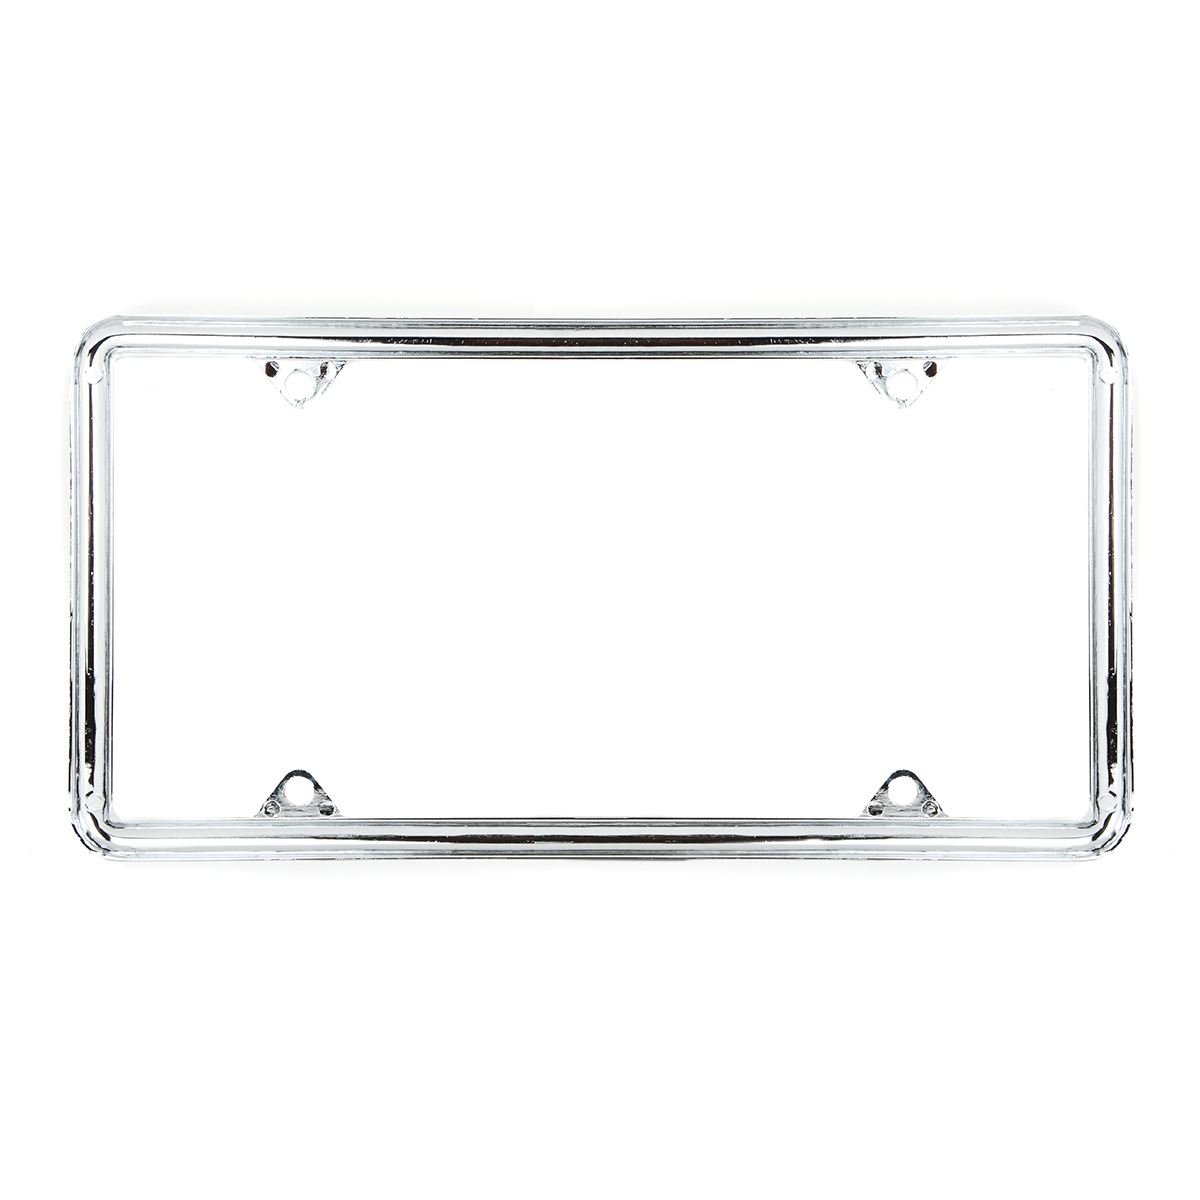 60061 Economic Chrome Zinc Classic 4-Hole License Plate Frames - Back View